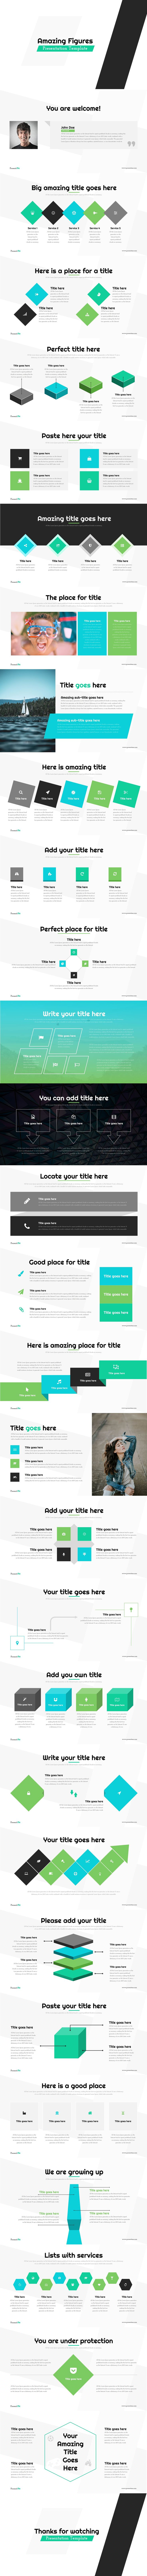 29 best book powerpoint template images on pinterest amazing figures powerpoint template toneelgroepblik Gallery